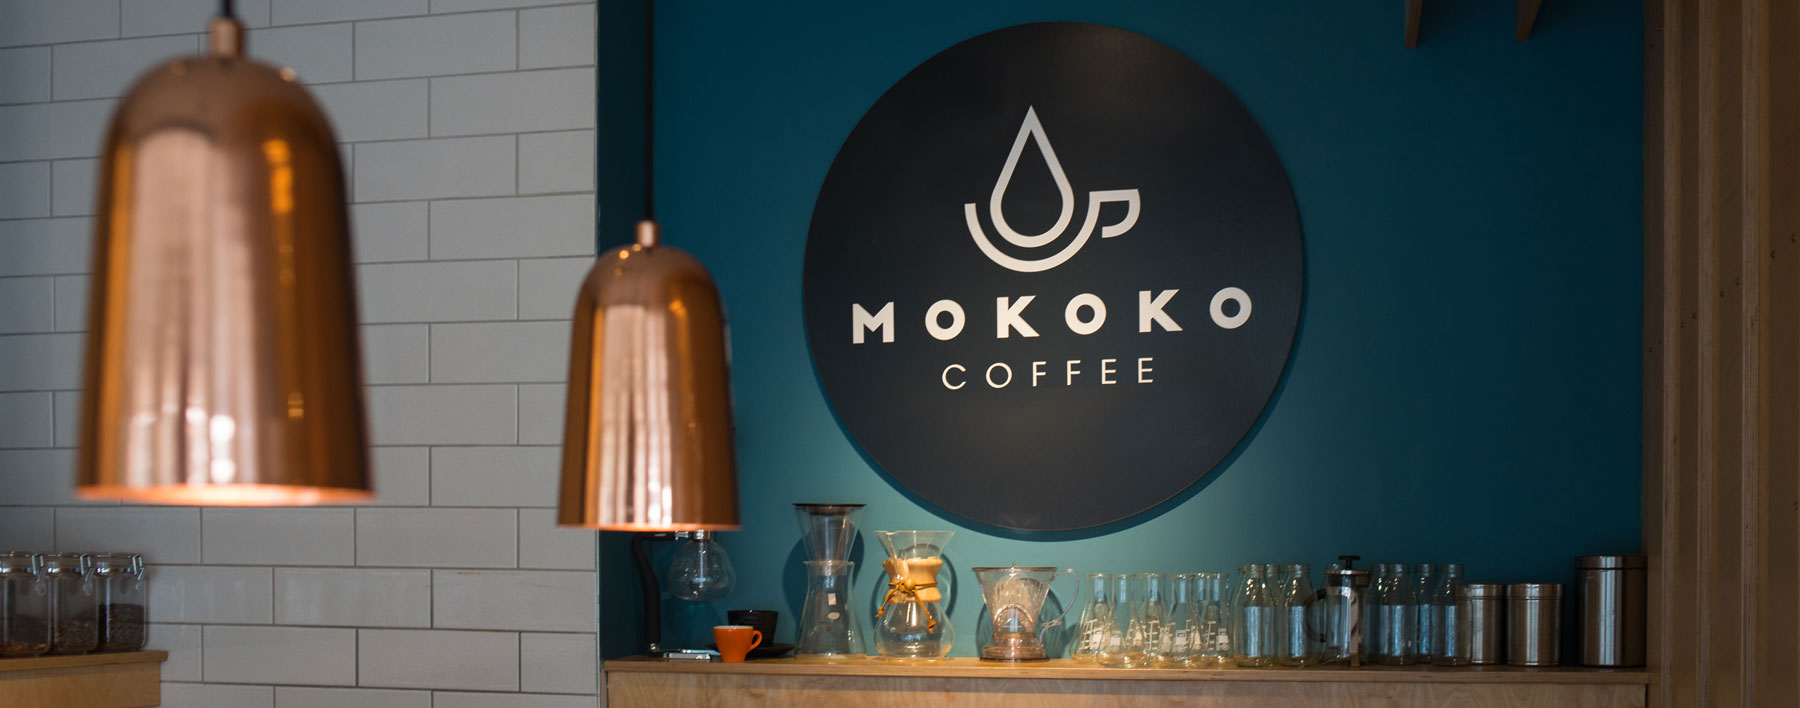 Mokoko Coffee